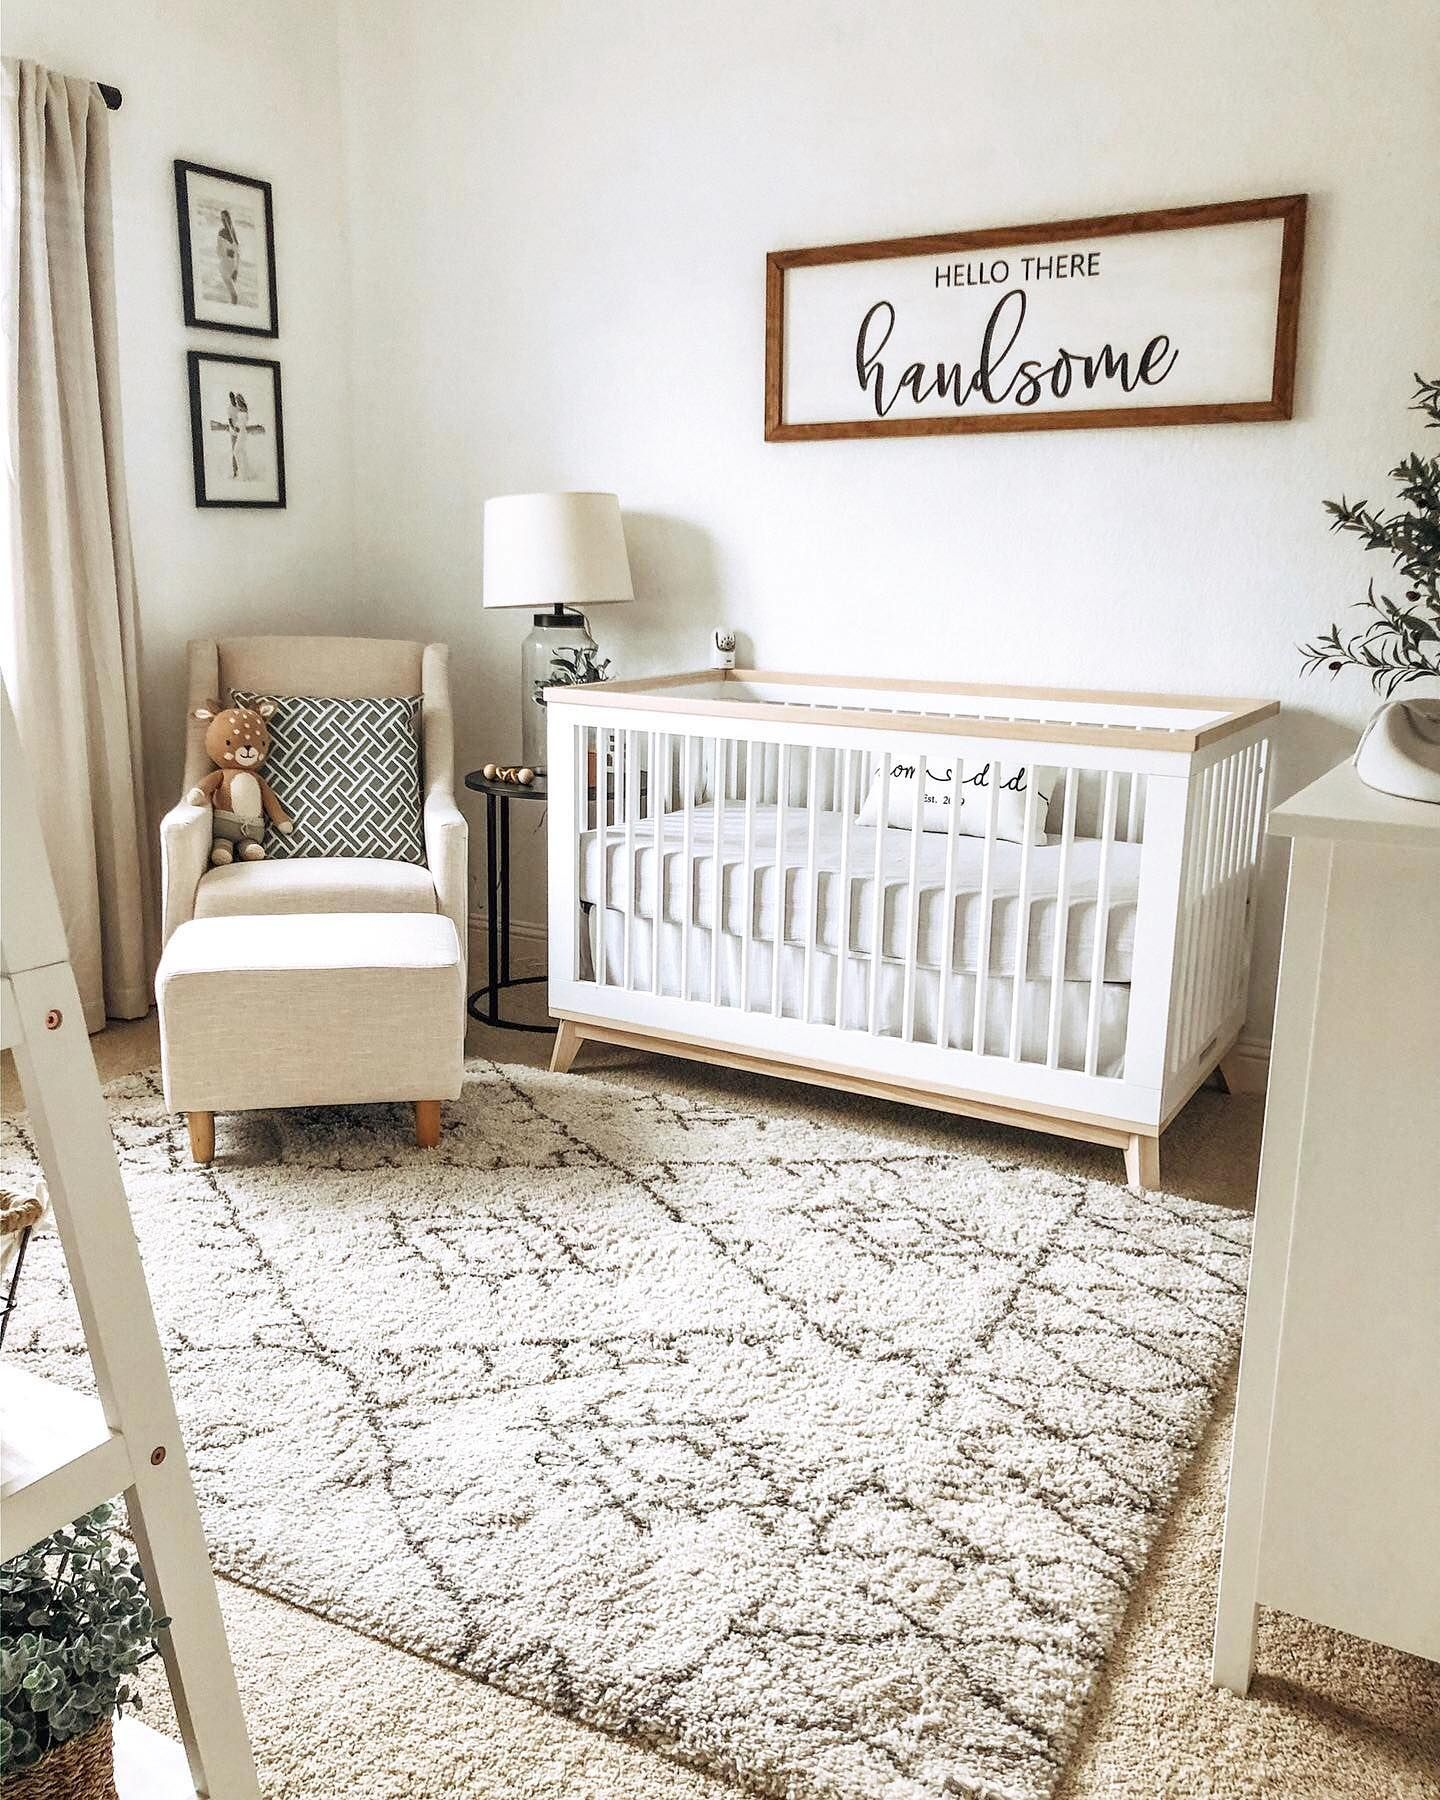 Hello There Handsome Only A Few Days Left To Get Free Shipping On Select Cribs Including This In 2020 Baby Boy Room Nursery Nursery Baby Room Baby Nursery Decor